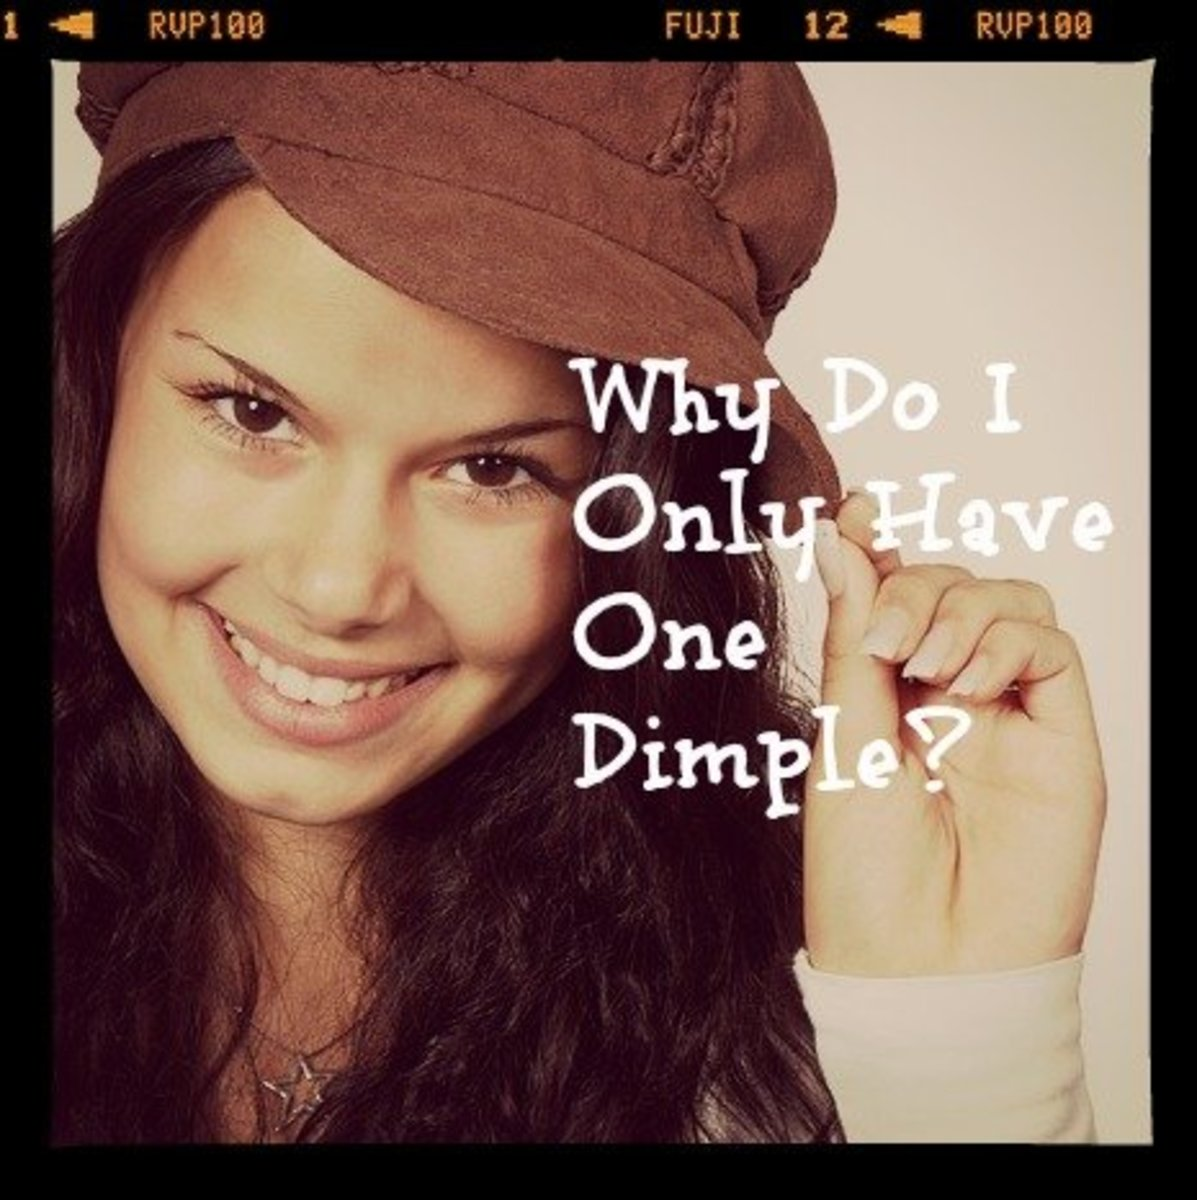 Why Do I Only Have One Dimple?